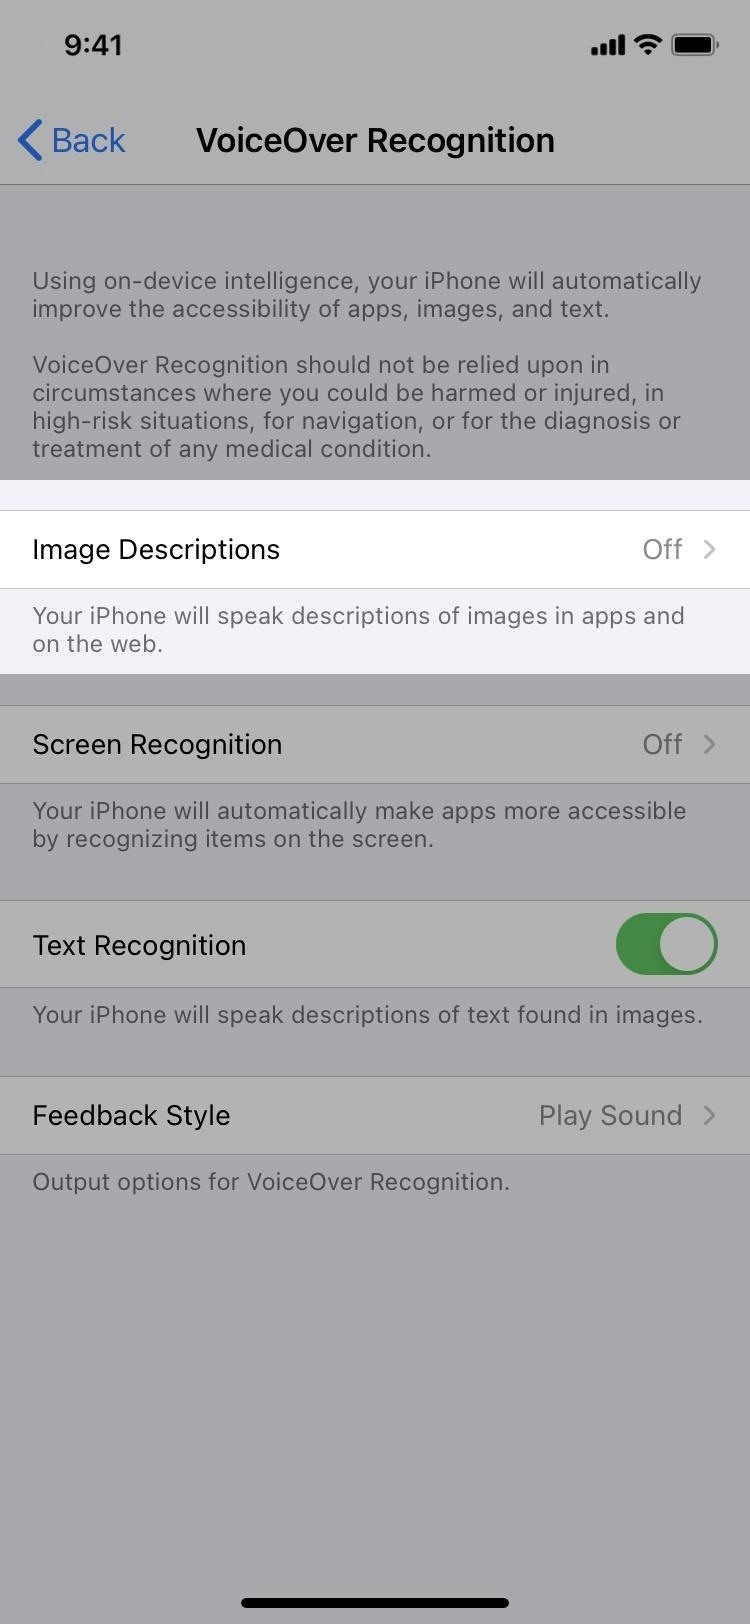 19 New Accessibility Features in iOS 14 That Every iPhone User Can Benefit From